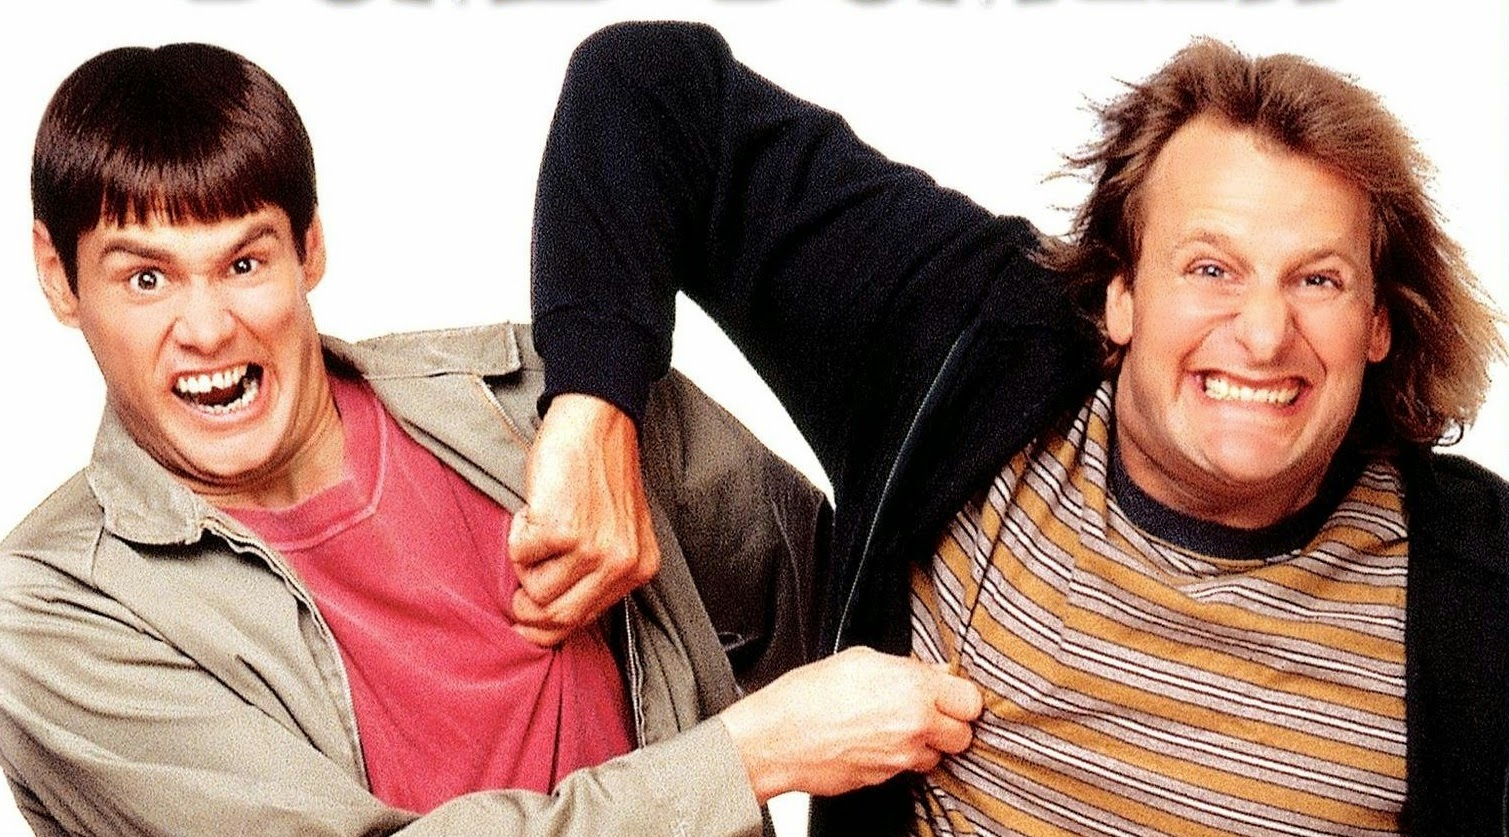 DUMB AND DUMBER – A Look Back at The Funniest Moments from this Comedy  Classic - ScreenInvasion